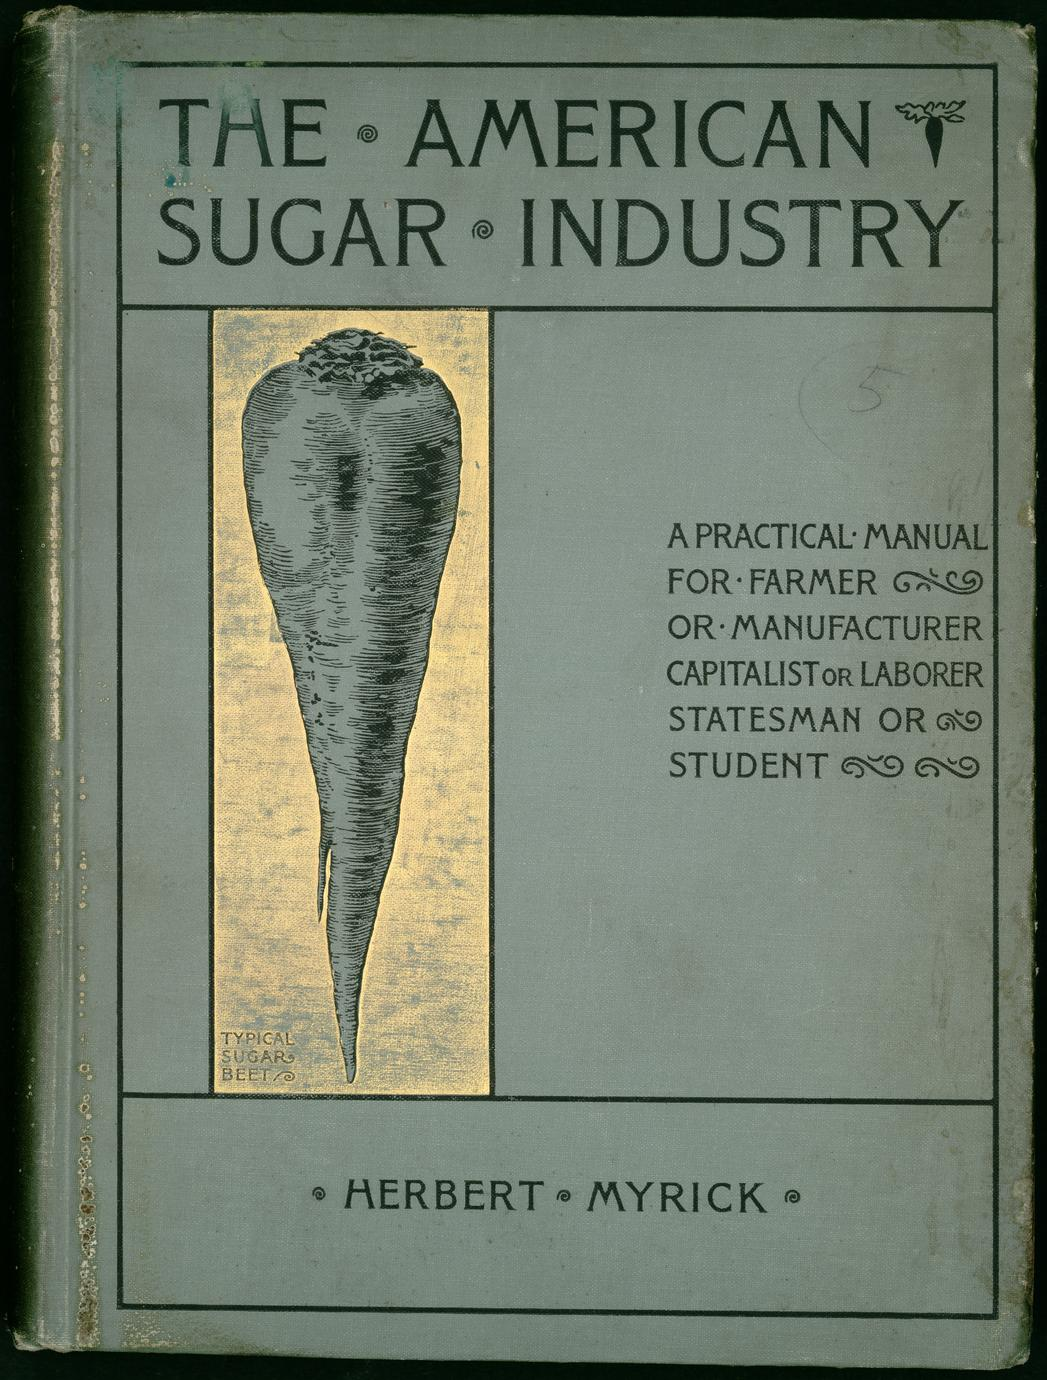 The American sugar industry : a practical manual on the production of sugar beets and sugar cane, and on the manufacture of sugar therefrom (1 of 3)